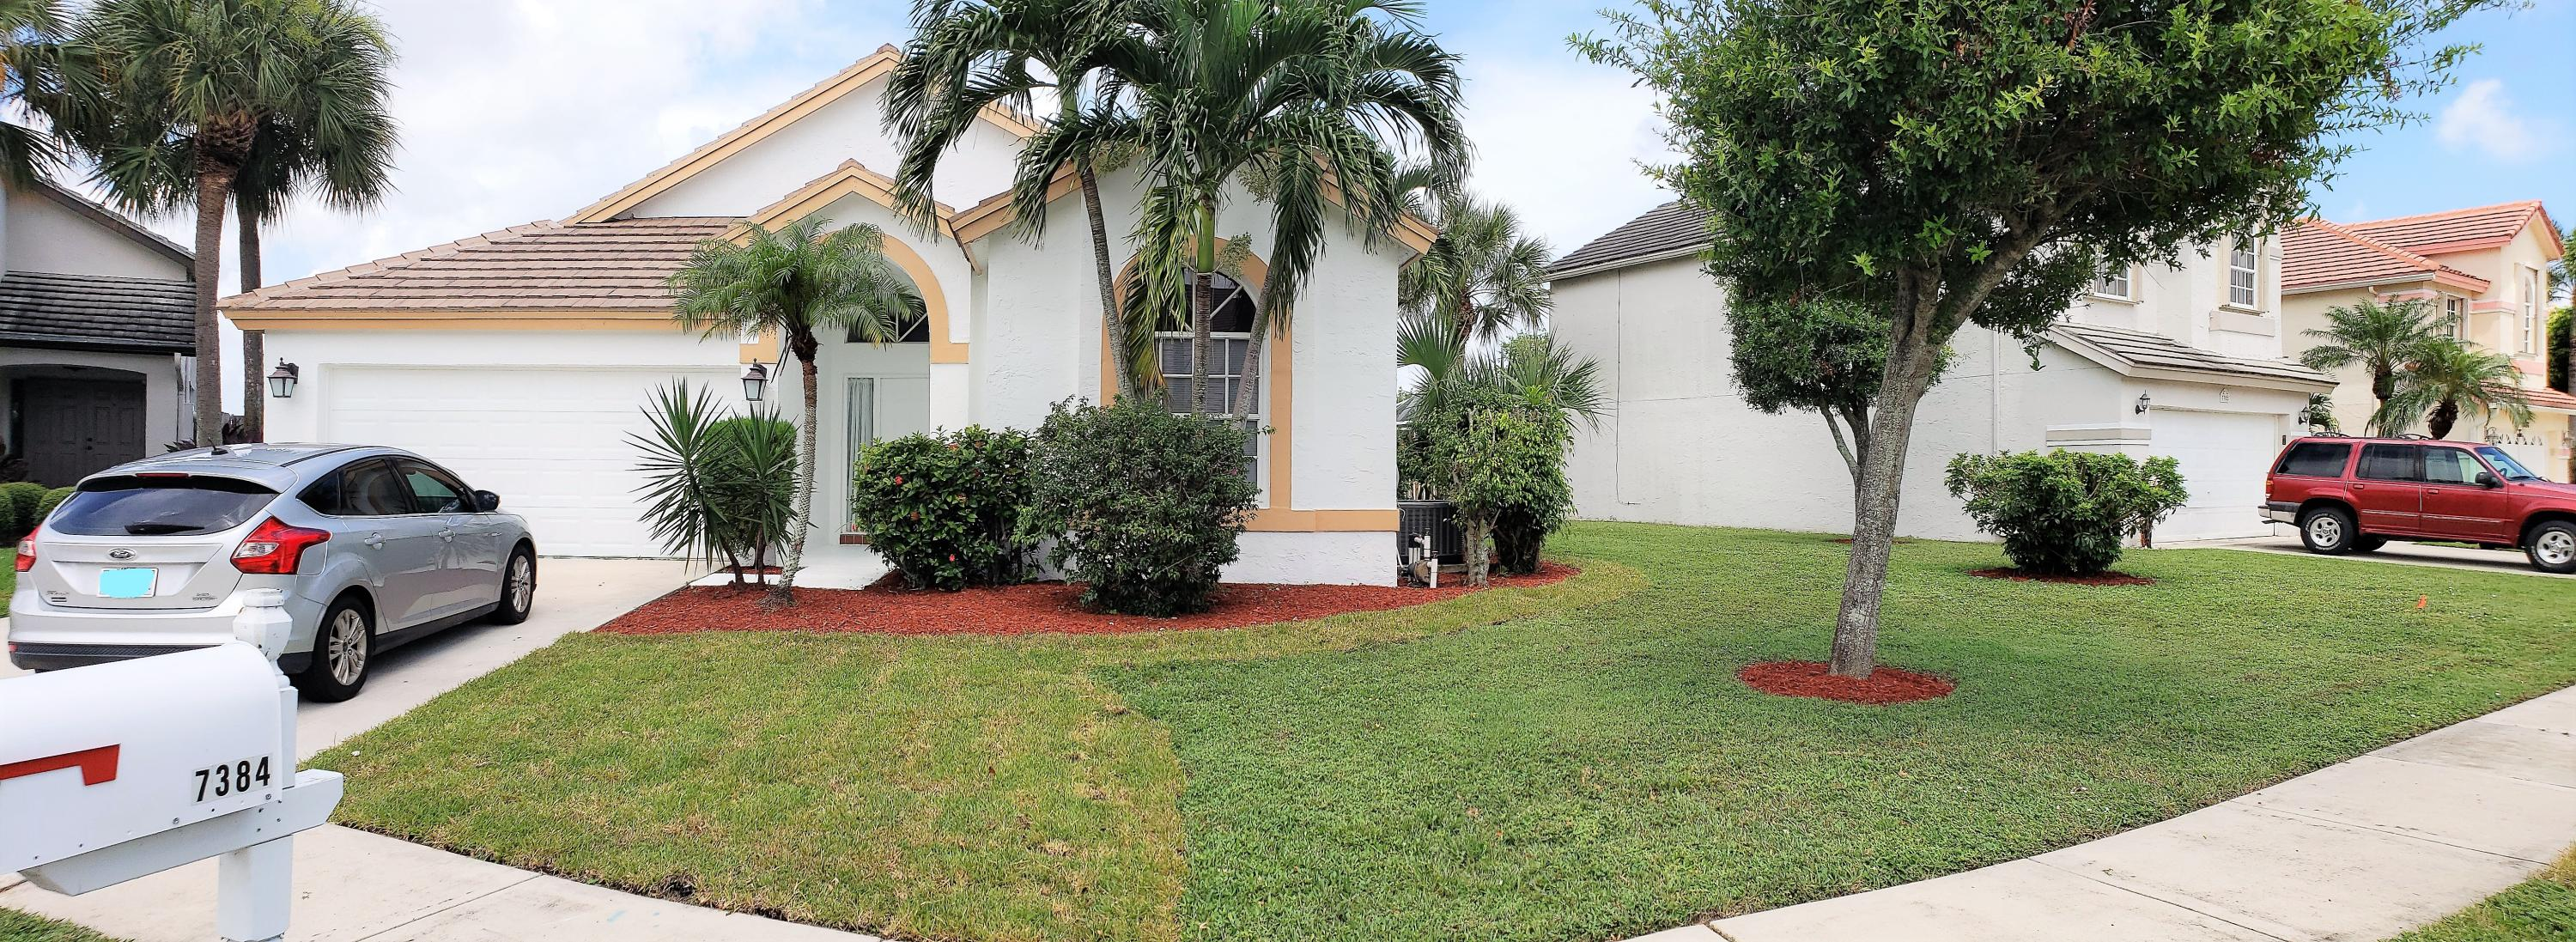 7384 Ashley Shores Circle Lake Worth, FL 33467